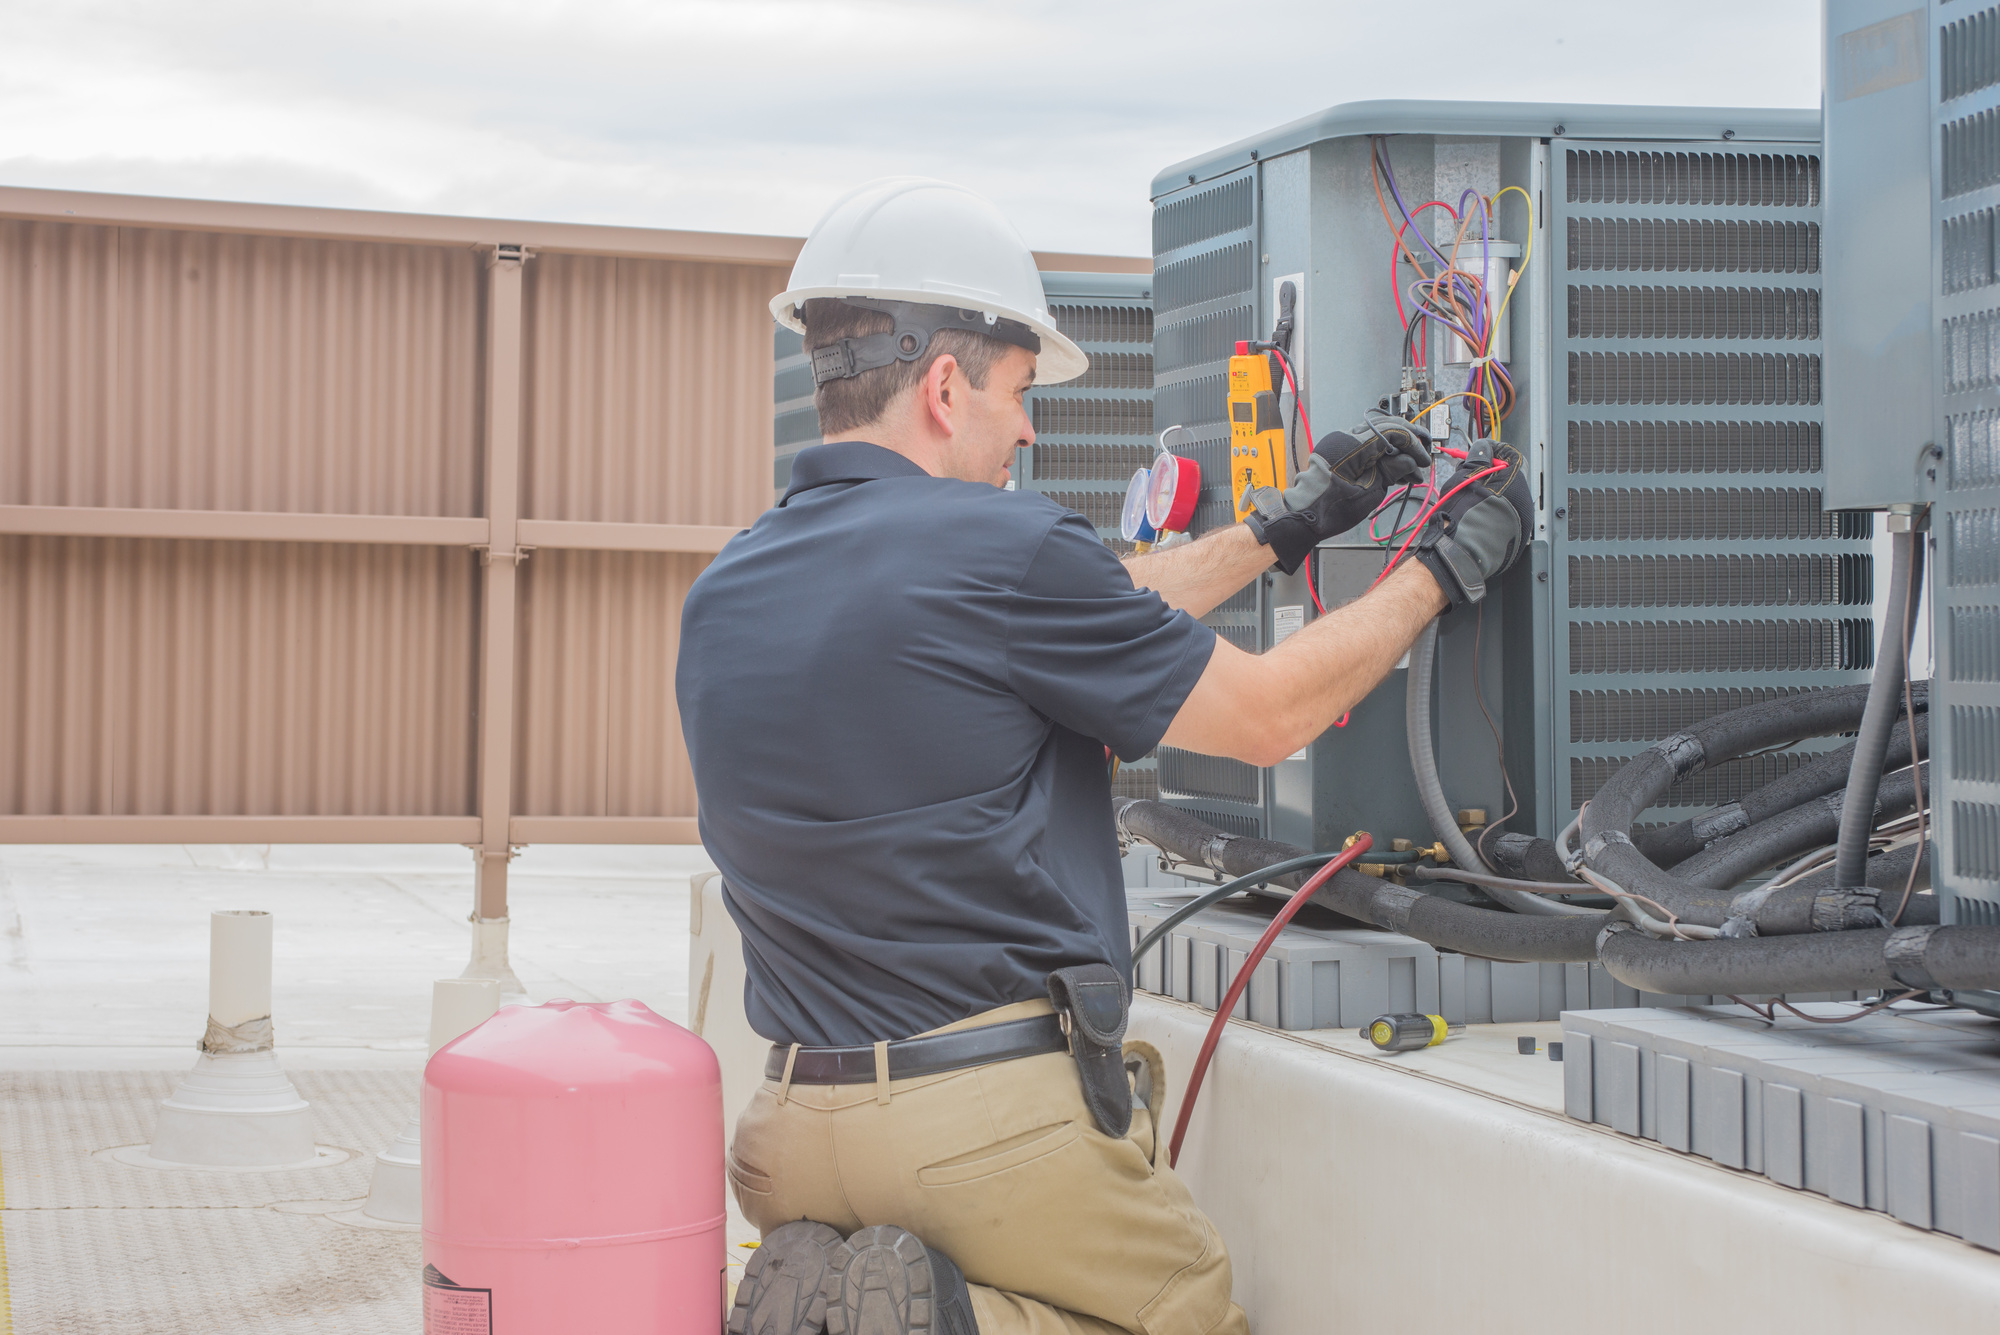 DIY HVAC Repairs: 7 Reasons Why You Just Shouldn't Go There